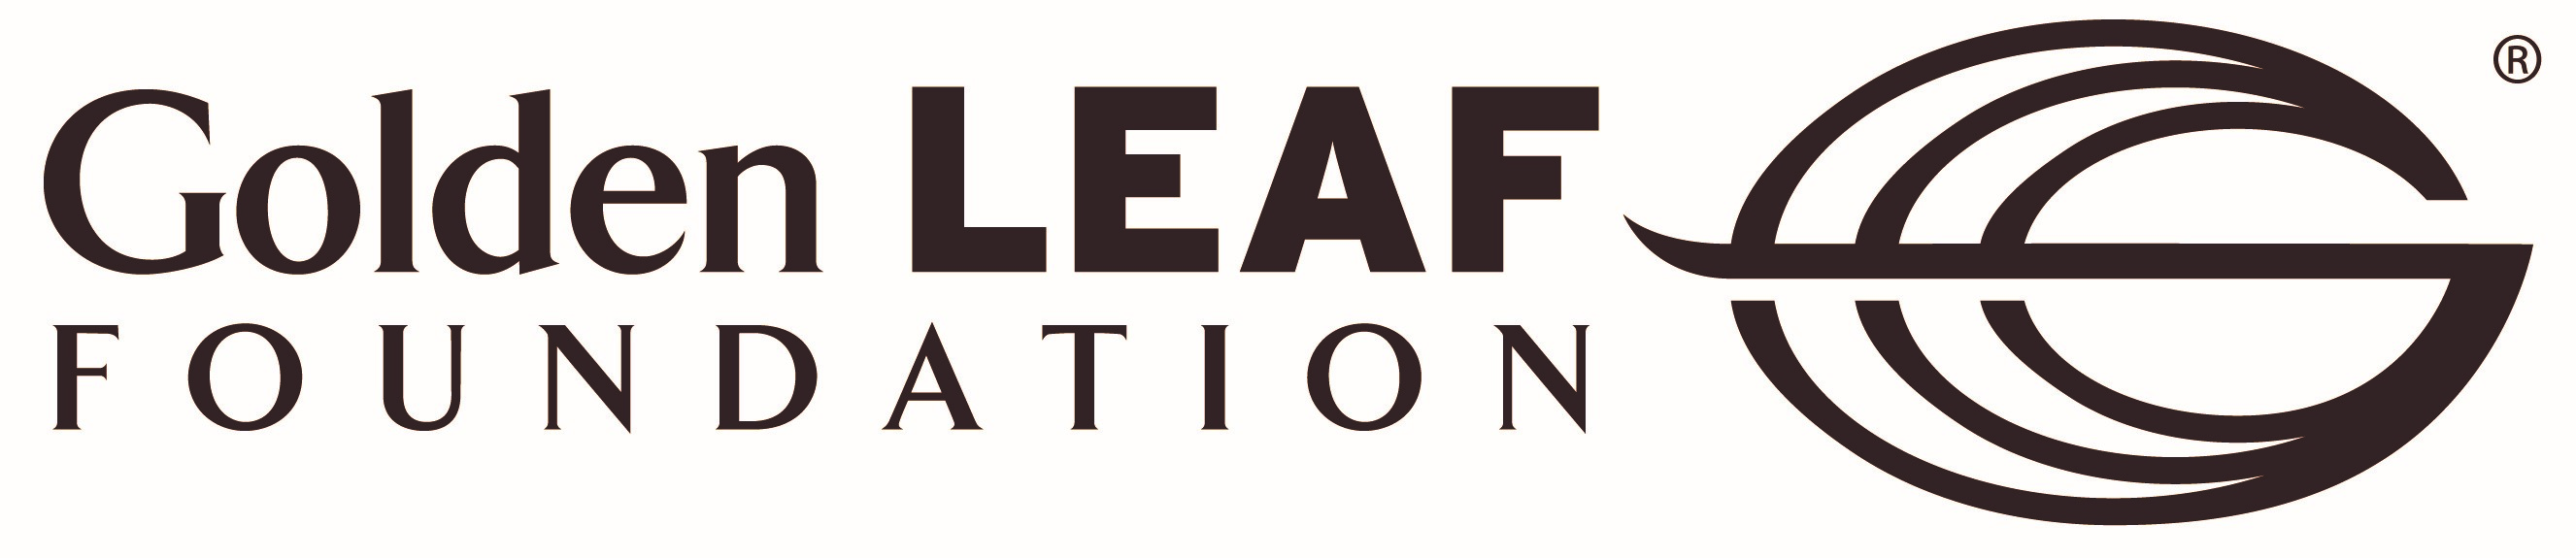 Golden Leaf logo1